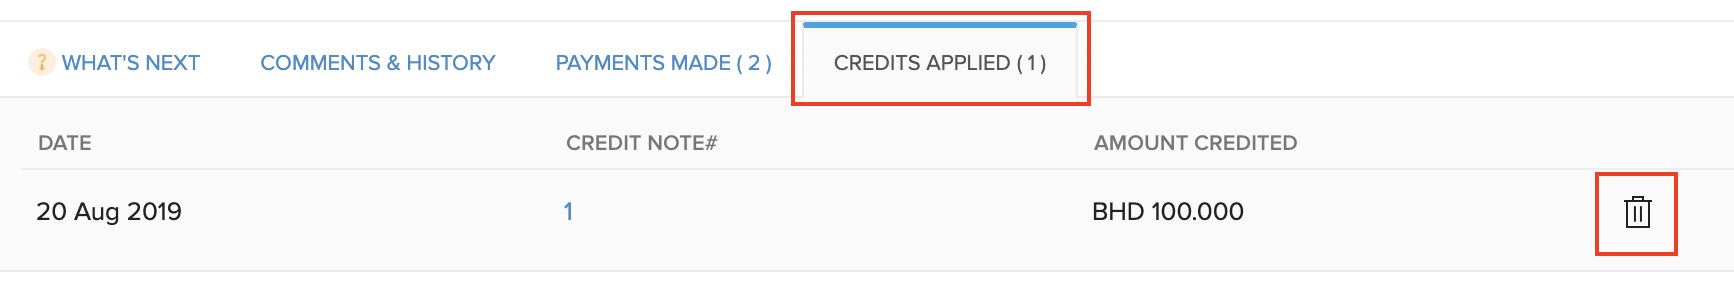 Delete Applied Credits